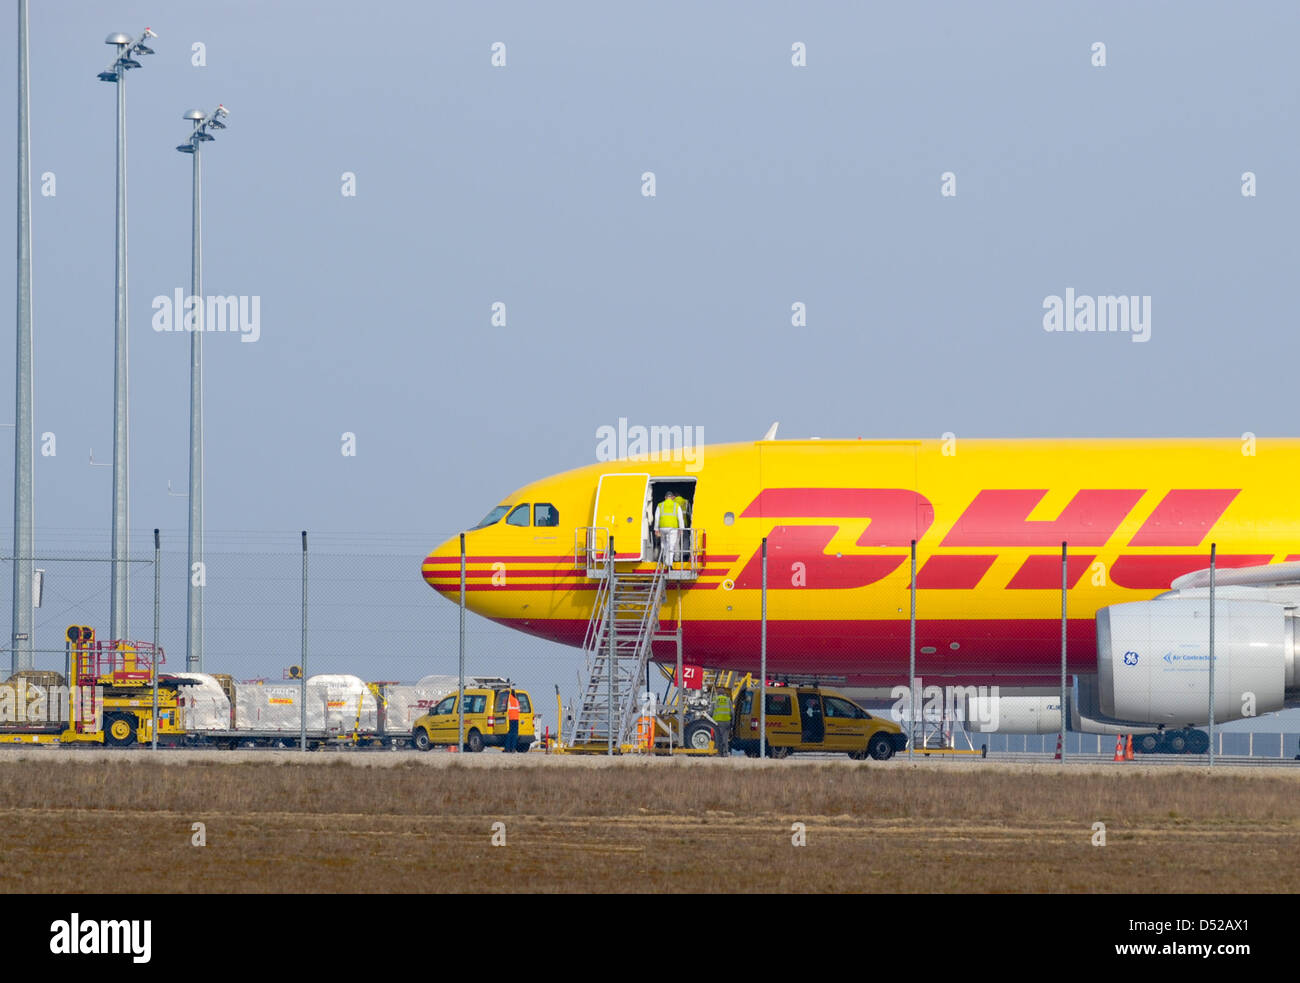 dhl cargo planes are situated at the airport in leipzig halle stock photo 54756857 alamy. Black Bedroom Furniture Sets. Home Design Ideas